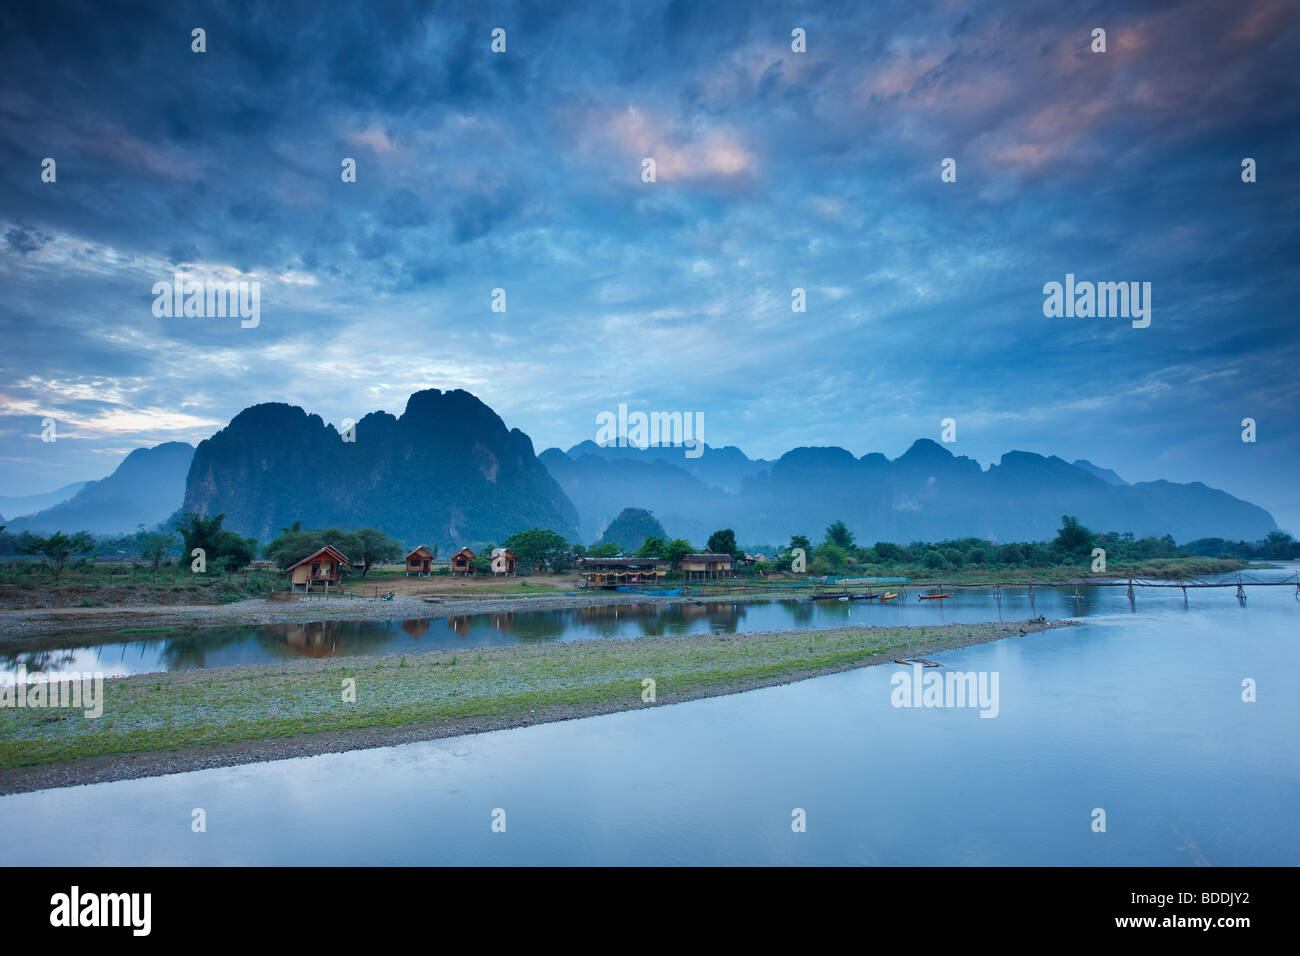 dawn over the mountains and Nam Song River at Vang Vieng, Laos - Stock Image